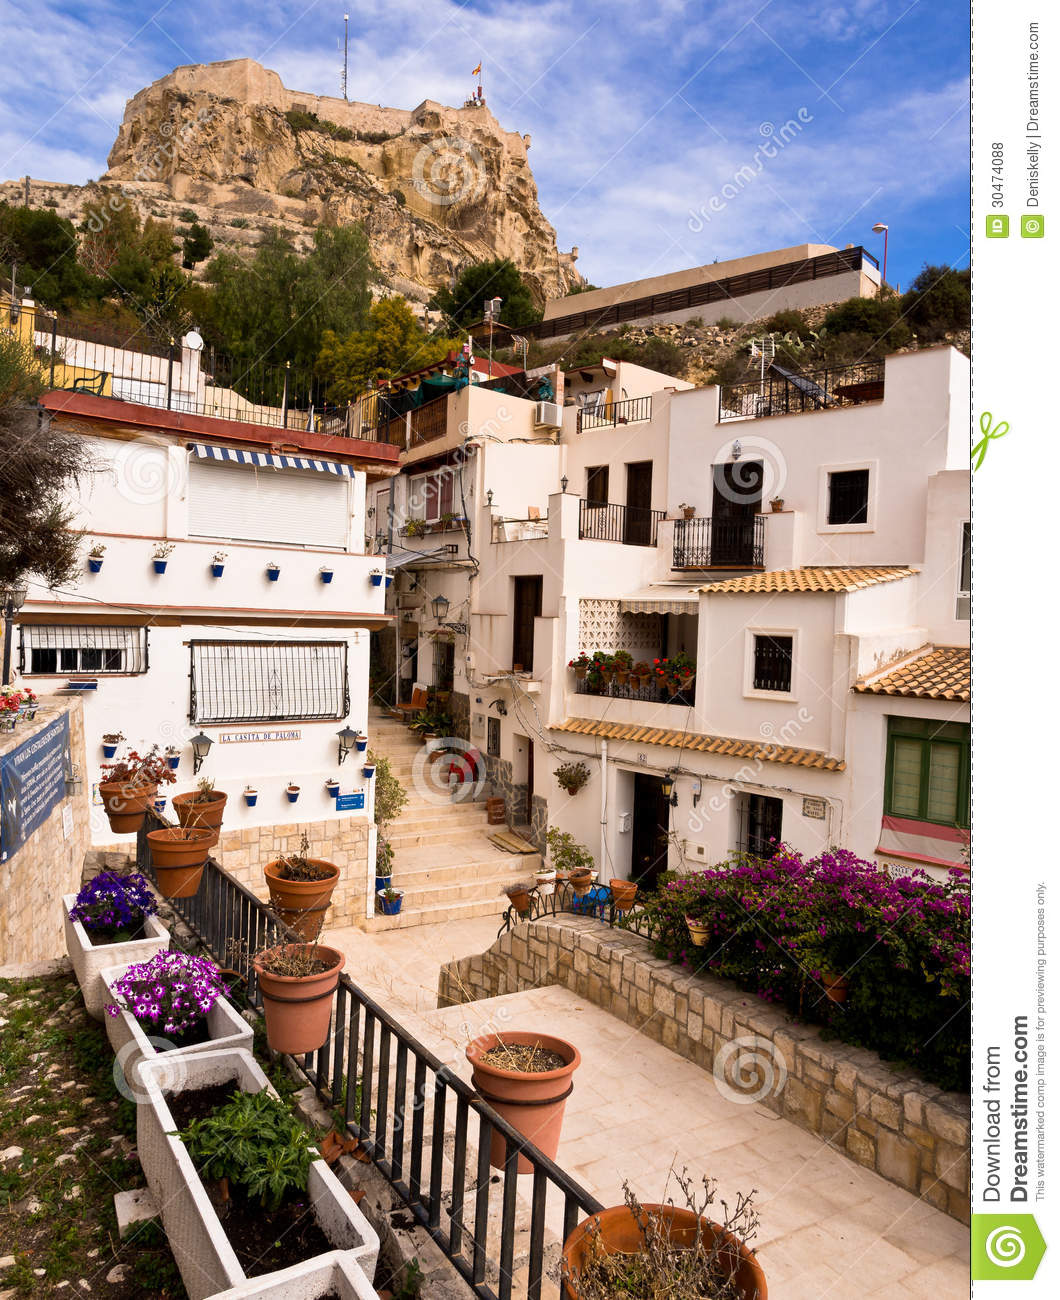 Old town and castle in alicante spain editorial stock for New house santa barbara